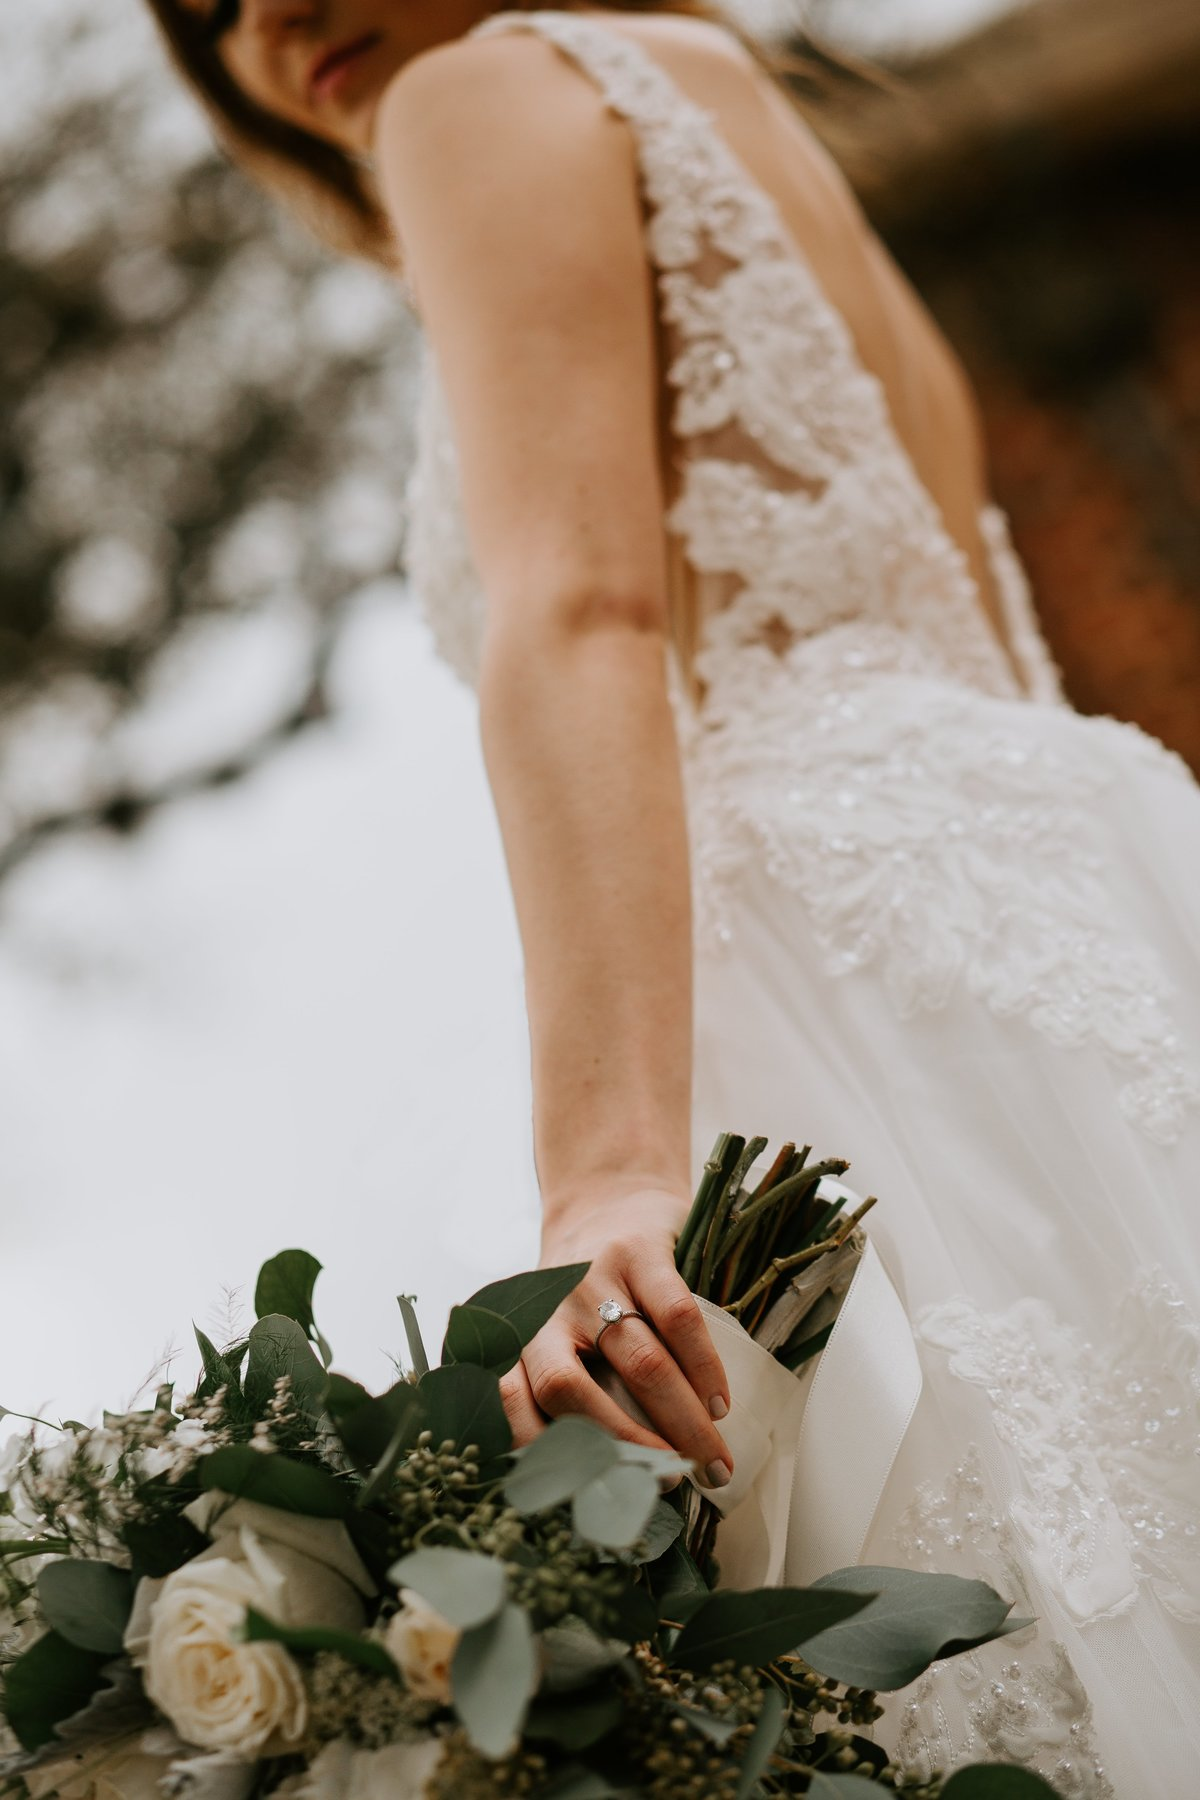 LynsieRaePhotography_2019 Styled Shoot_College Station-7